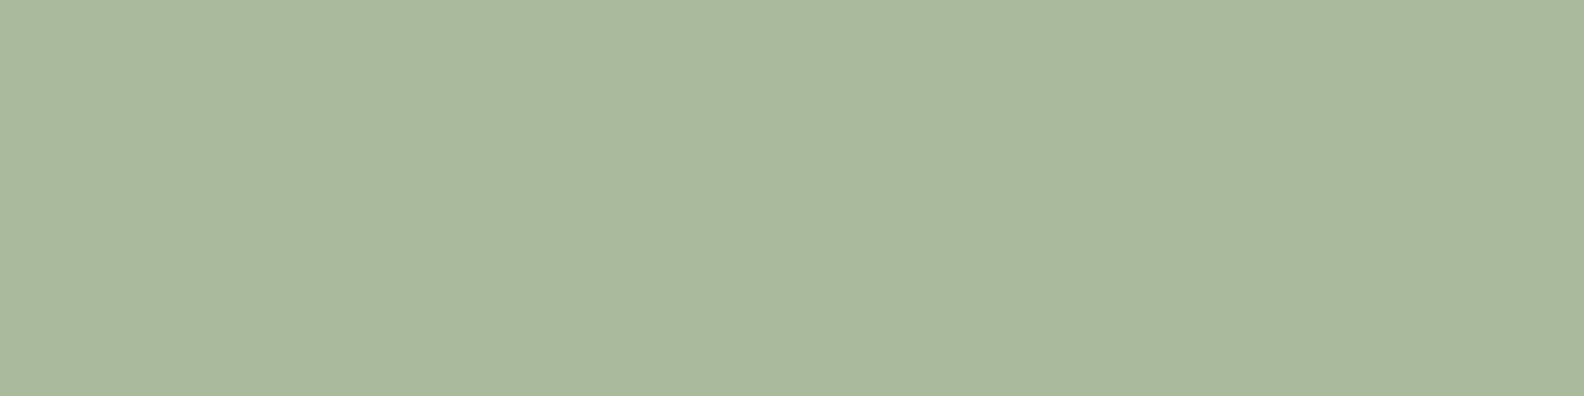 1584x396 Laurel Green Solid Color Background